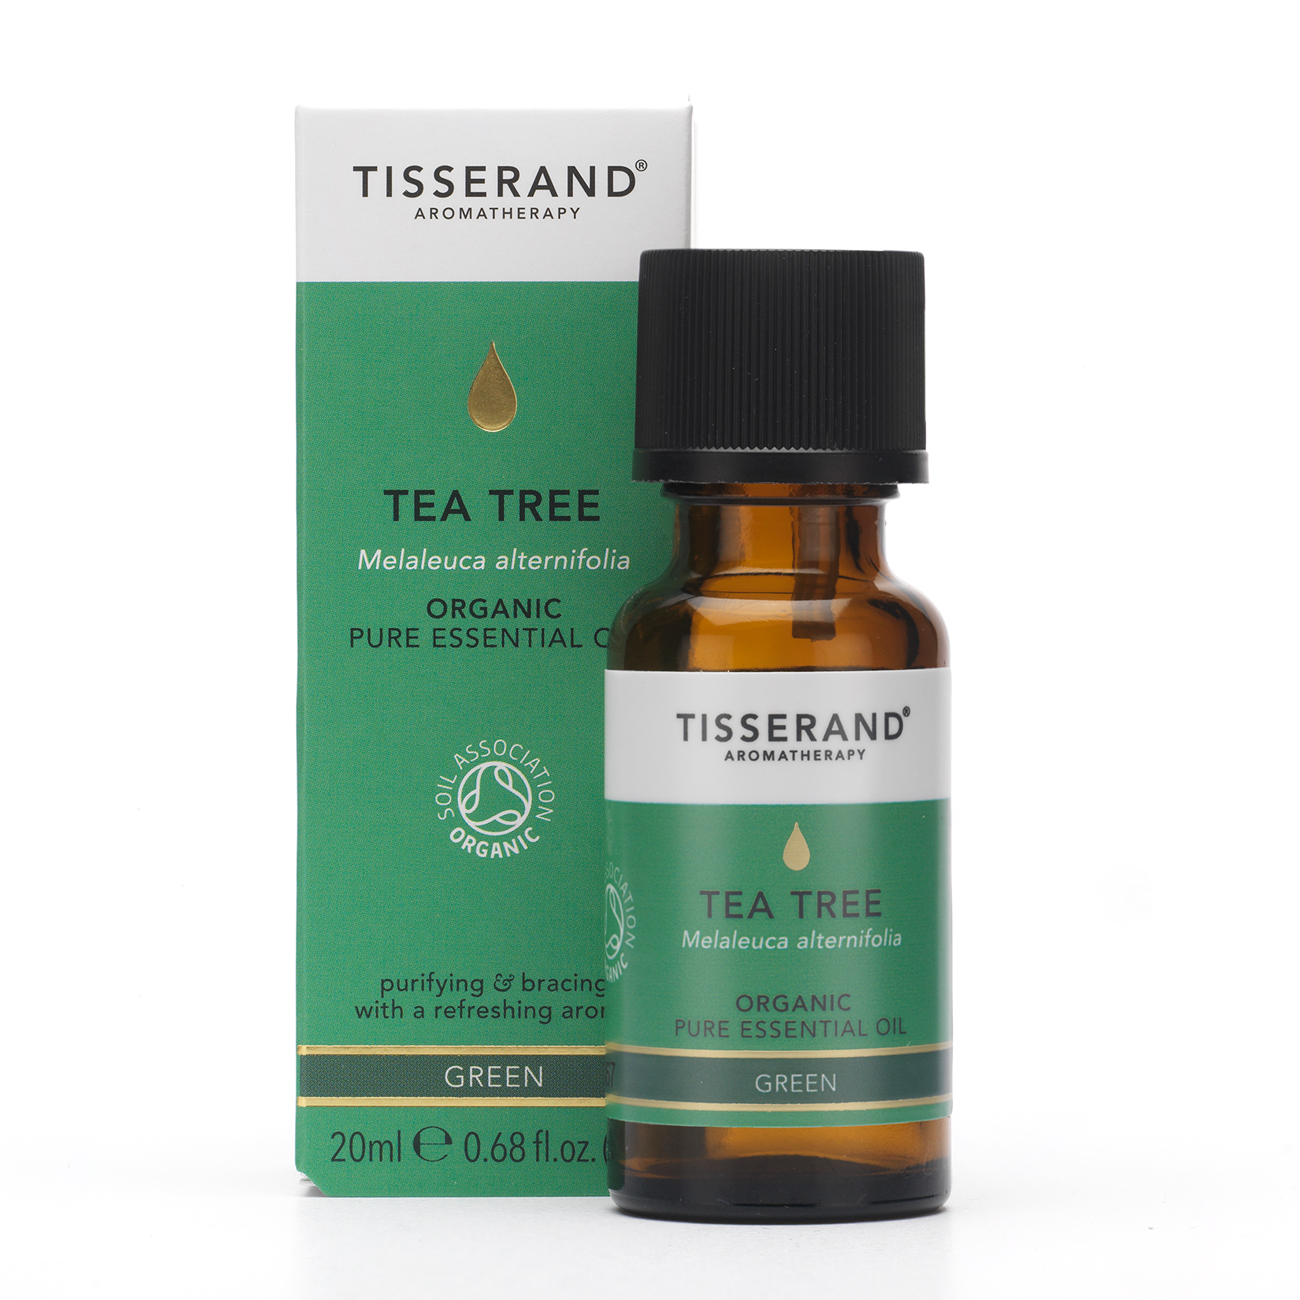 Tisserand Tea Tree Etherische olie